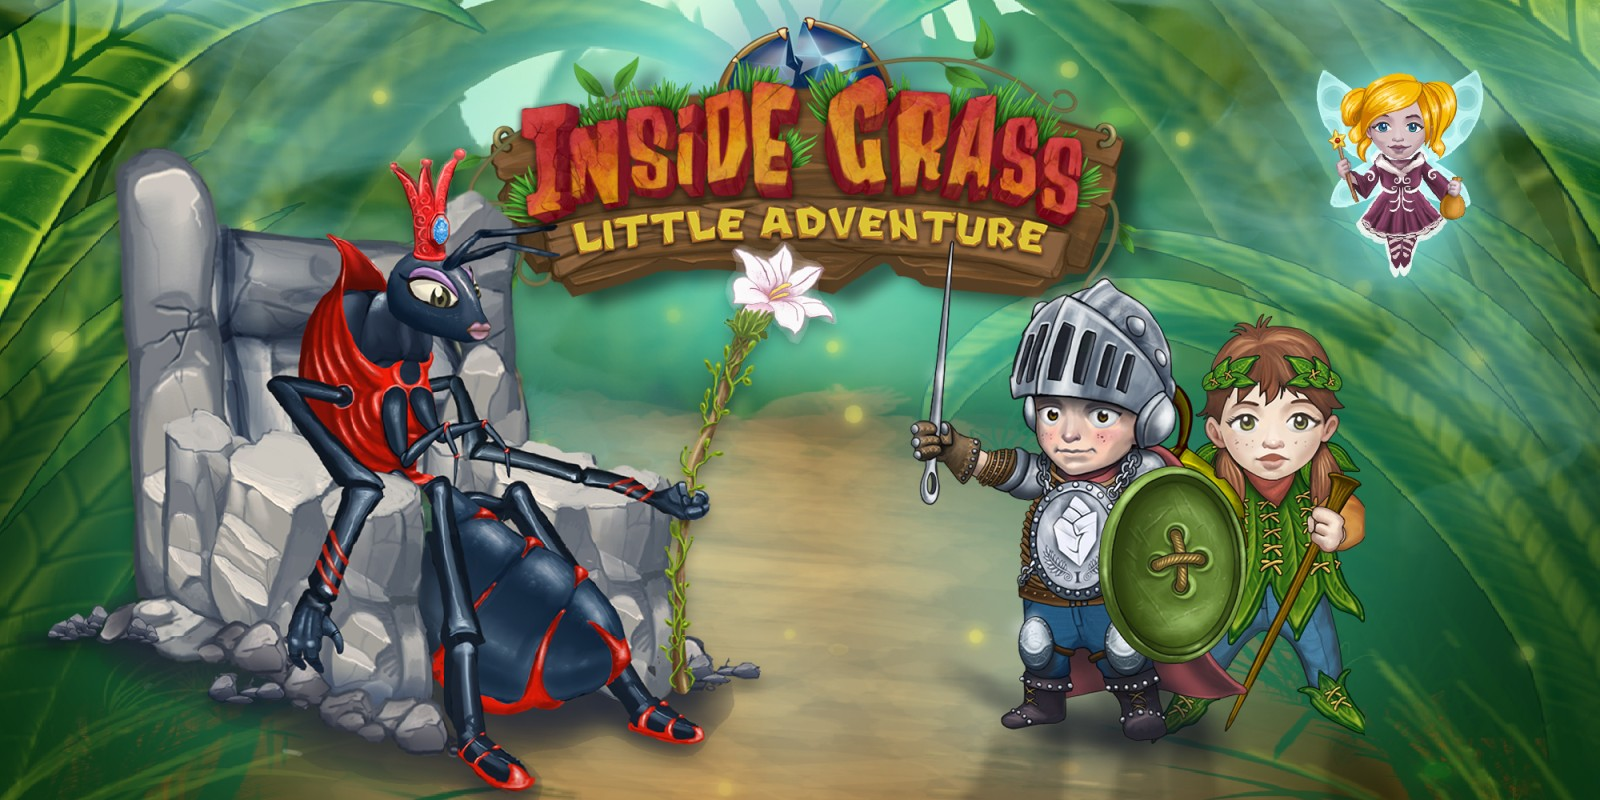 Inside Grass: A little adventure